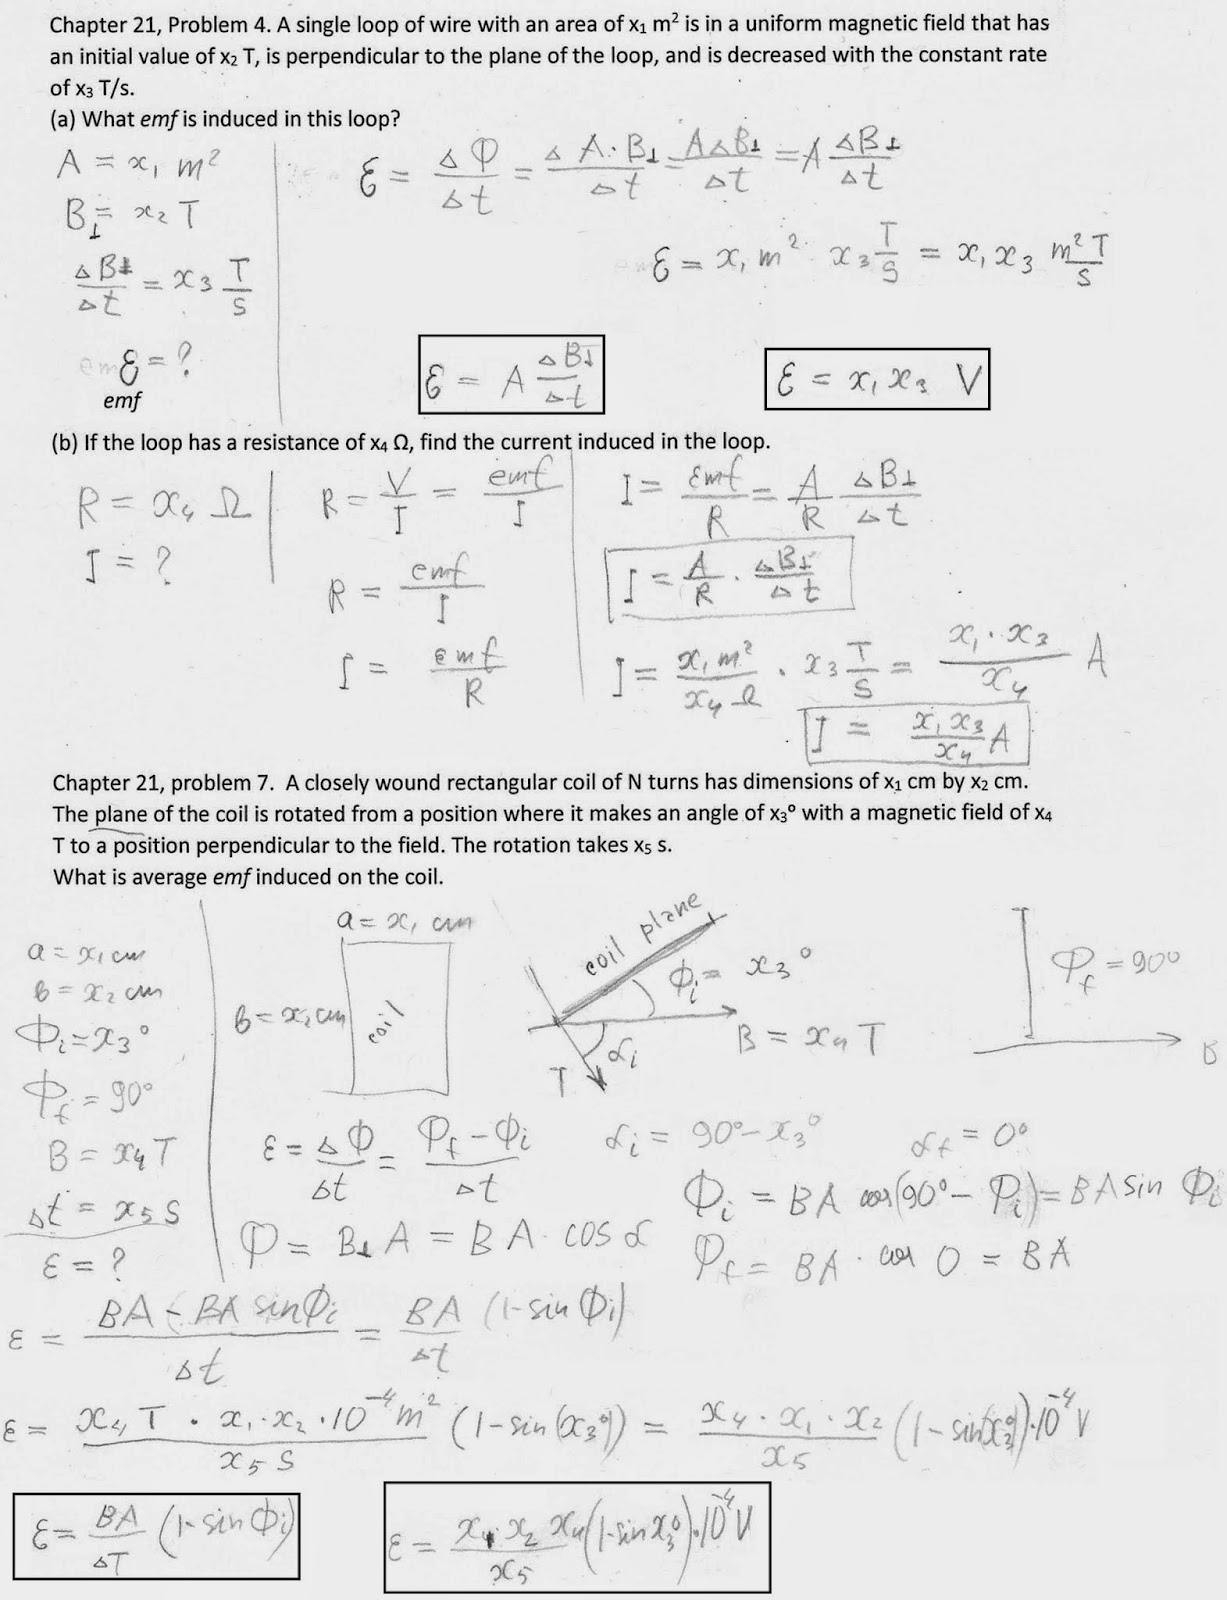 ∰ Algebra Based General Physics II: Solutions: Chapter 21